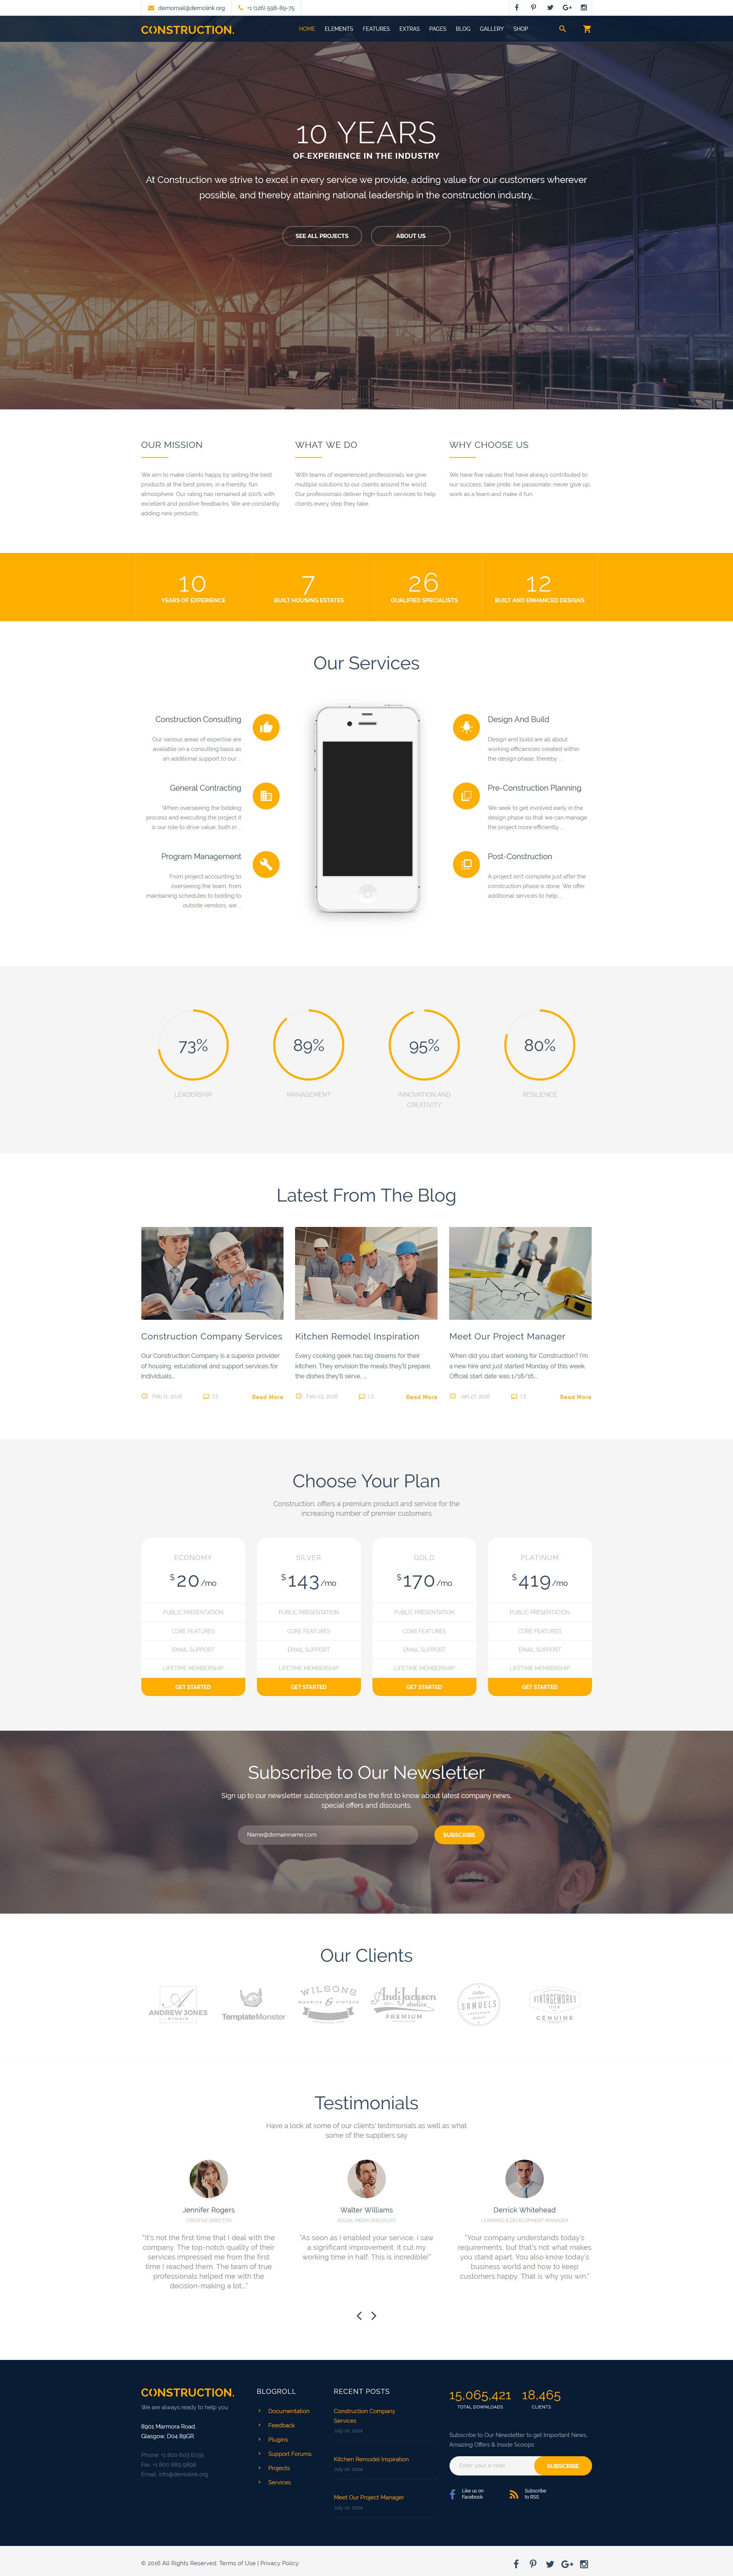 Responsivt Construction Multipurpose Website Template Hemsidemall #58533